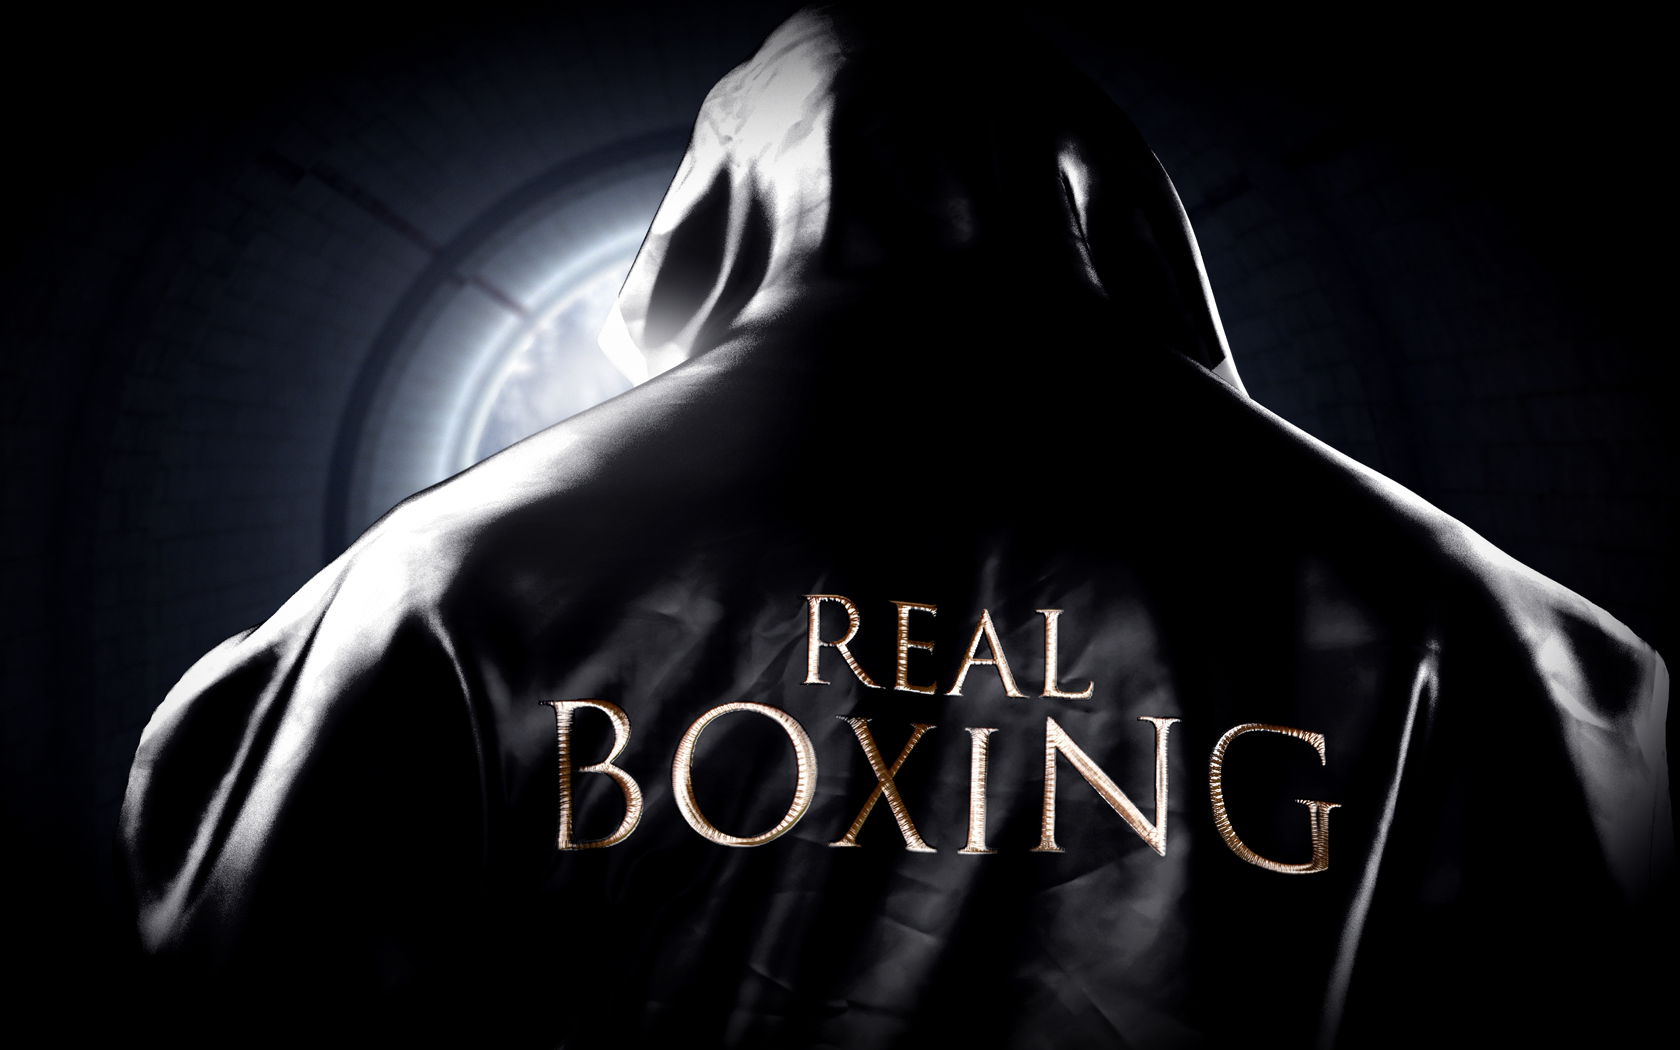 Boxing Ring Wallpaper - WallpaperSafari Boxing Wallpaper Hd